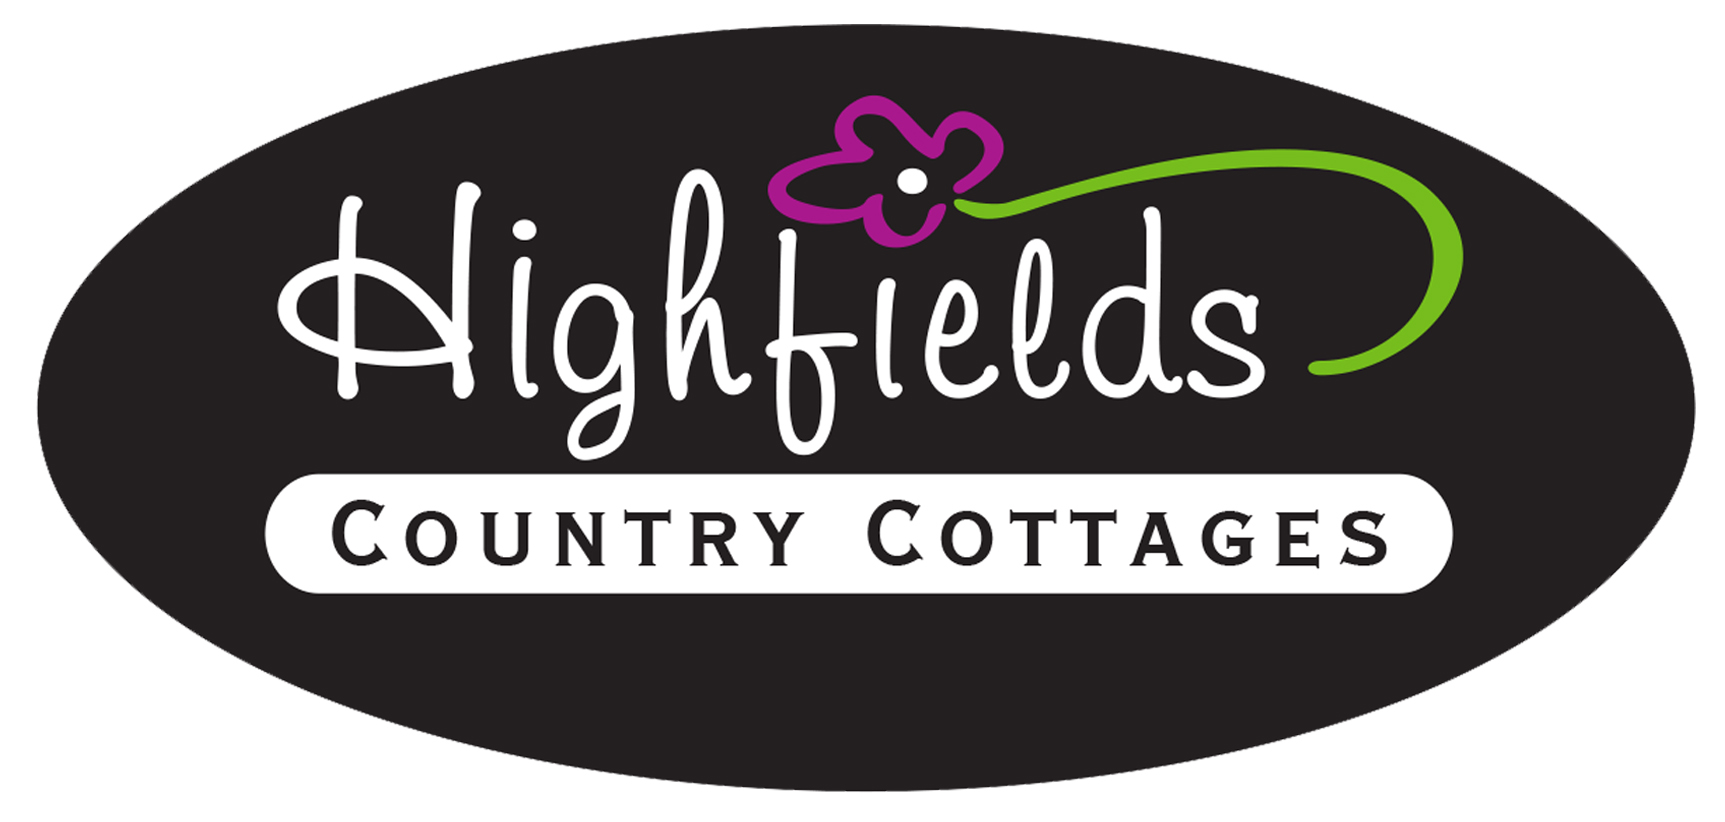 Highfields Country Cottages